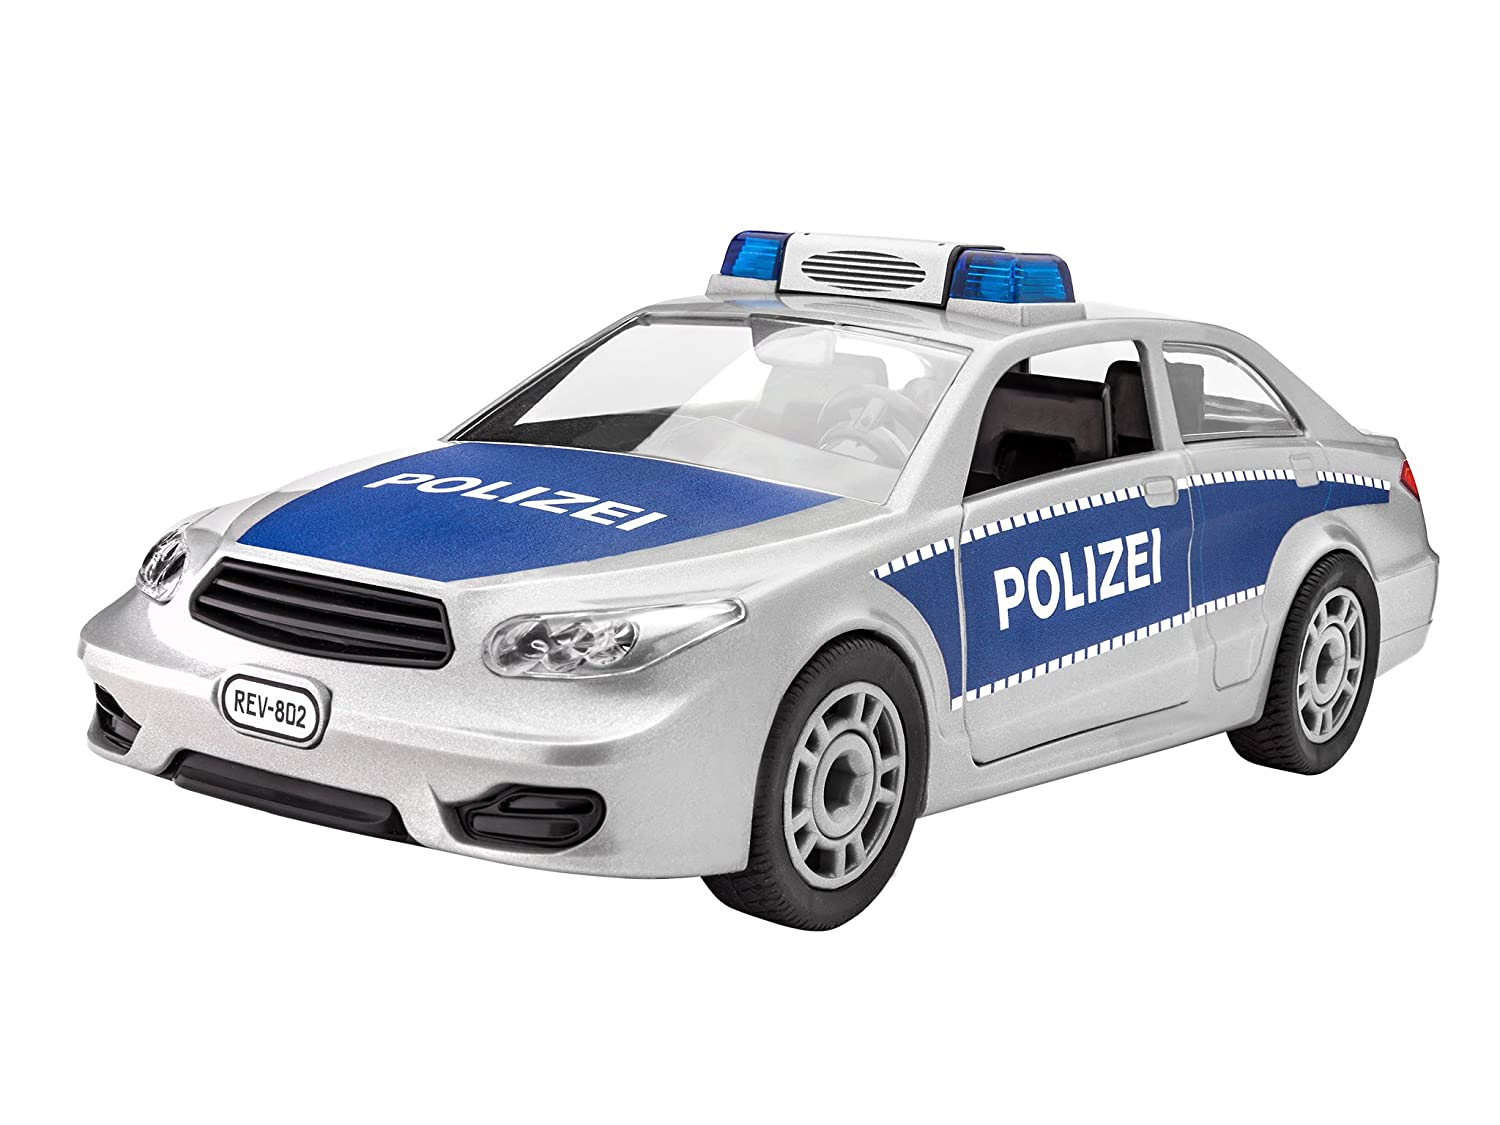 Amazon com: Revell 00802 Junior Kit Police Car Toy: Toys & Games